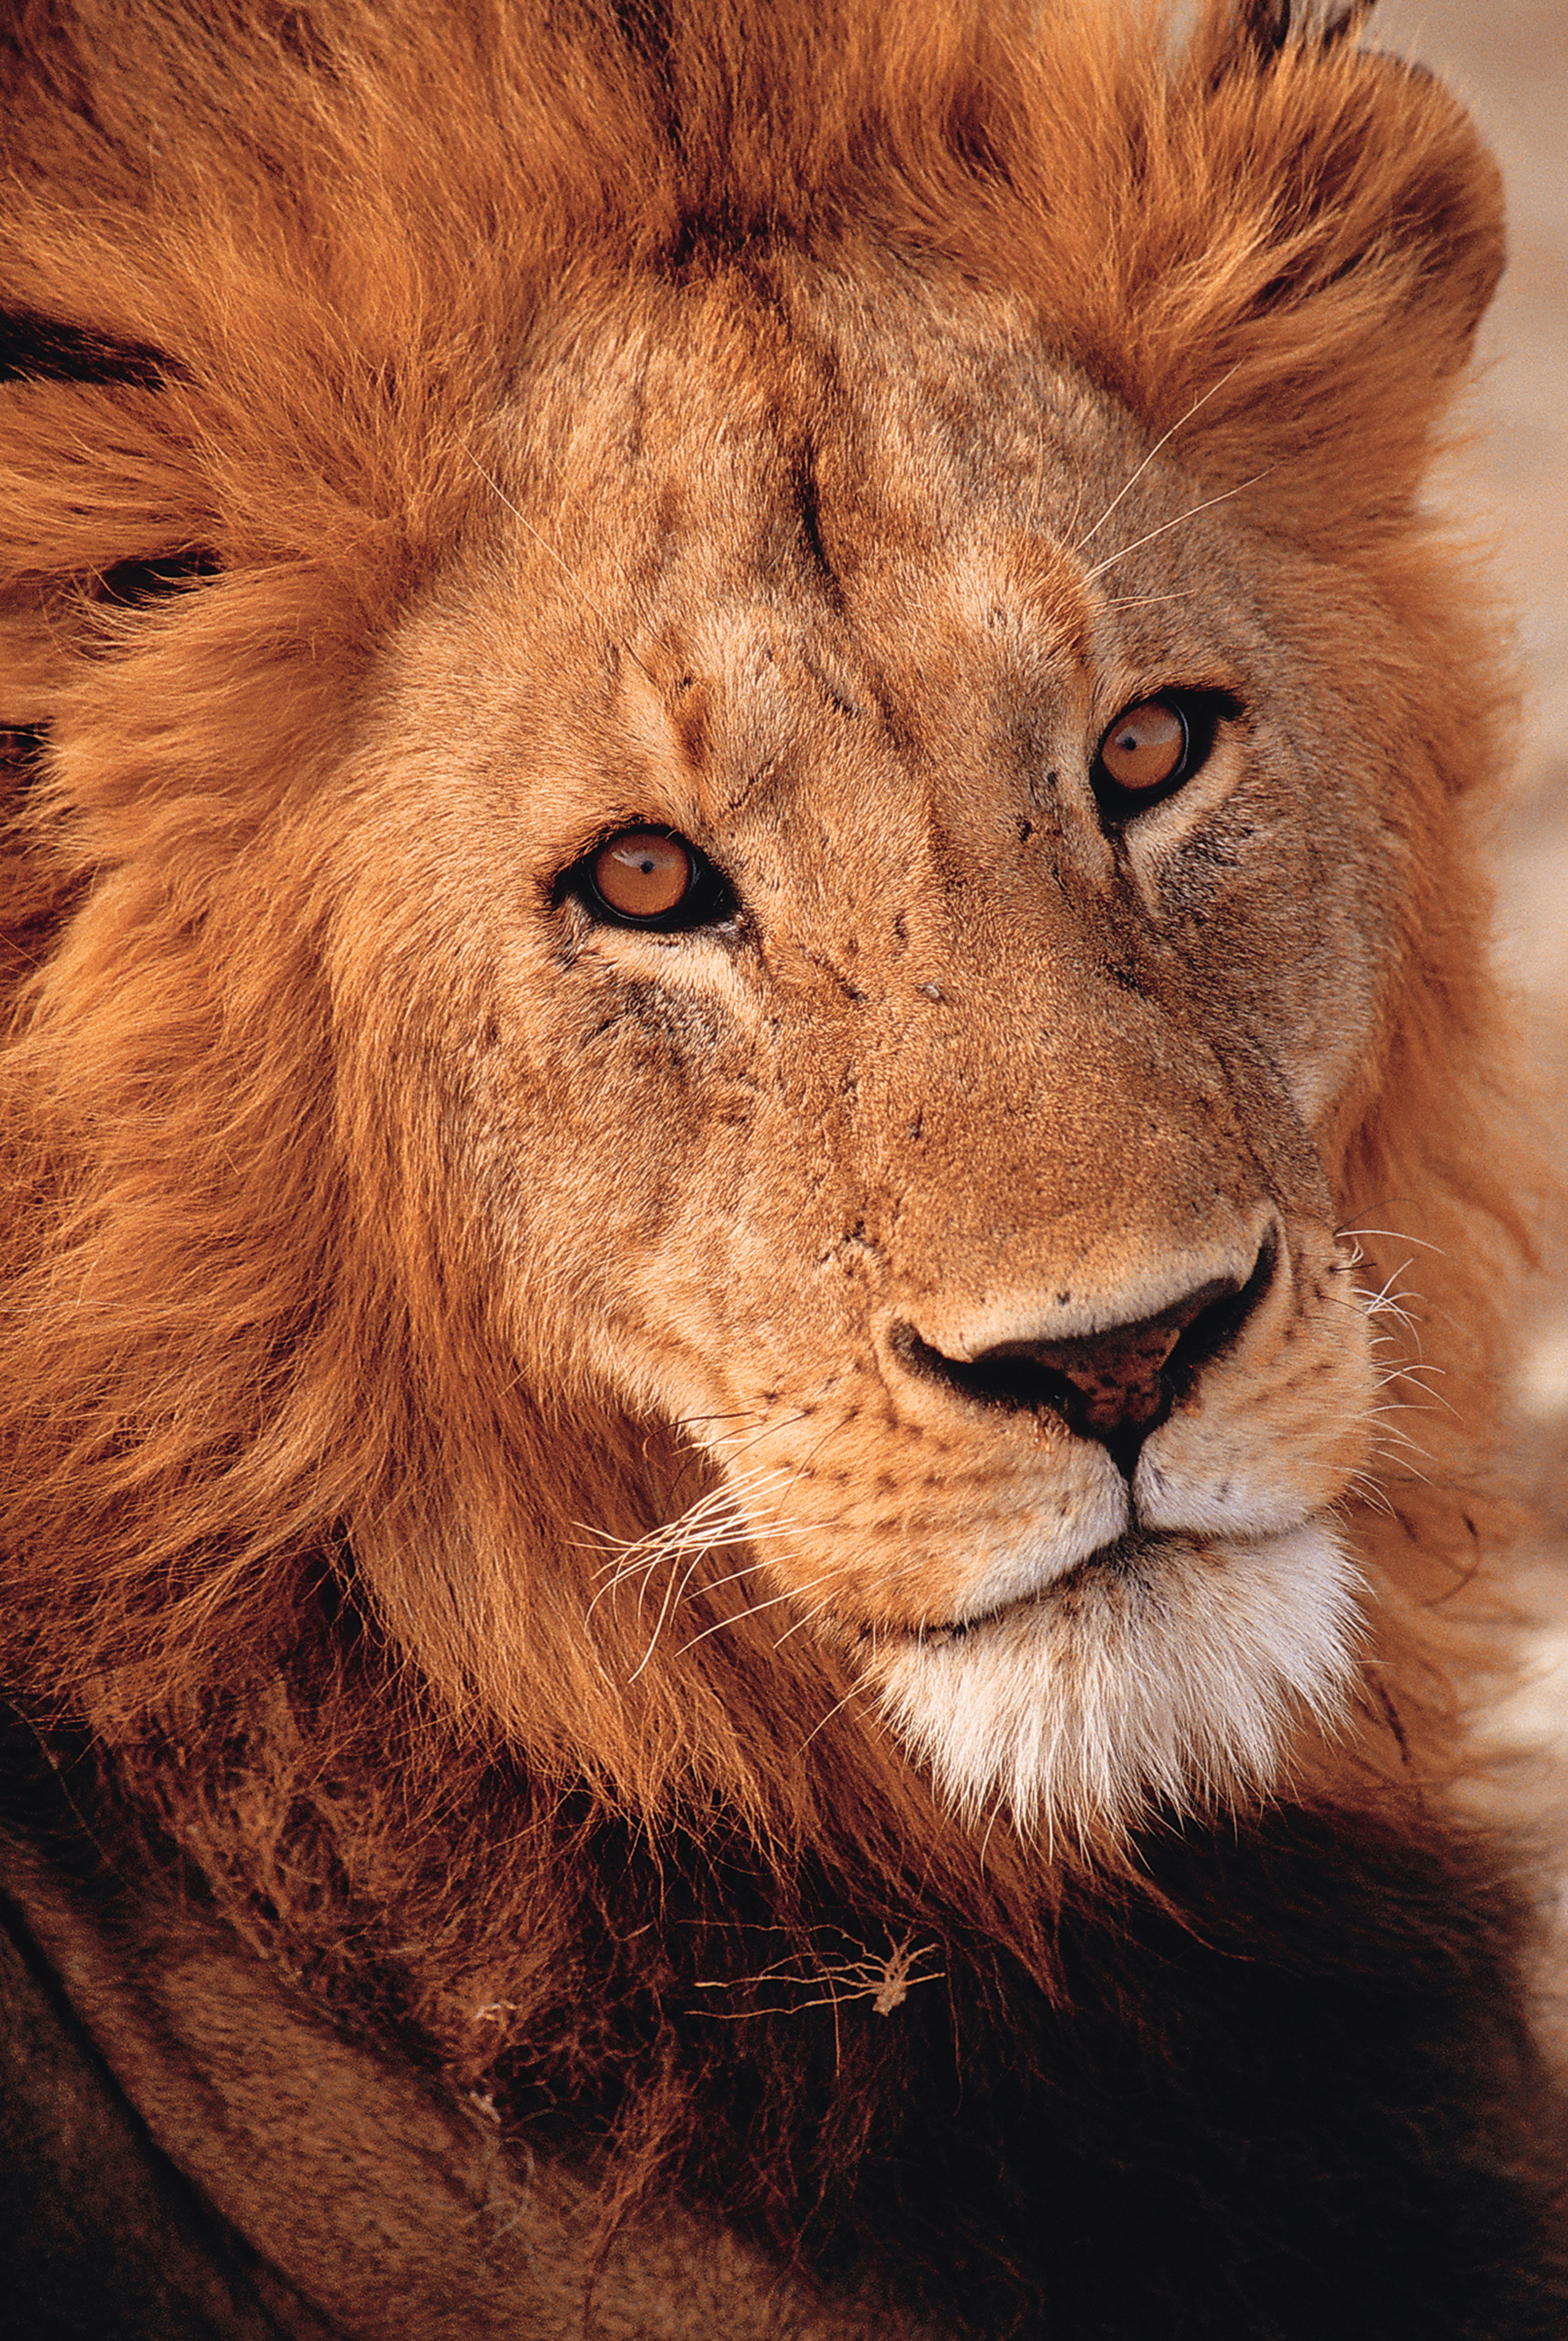 Mark the Evangelist's symbol is a winged lion – a figure of courage and monarchy. The lion also represents Jesus' resurrection and Christ as king.  Read the Introduction to our Study of Mark's Gospel.